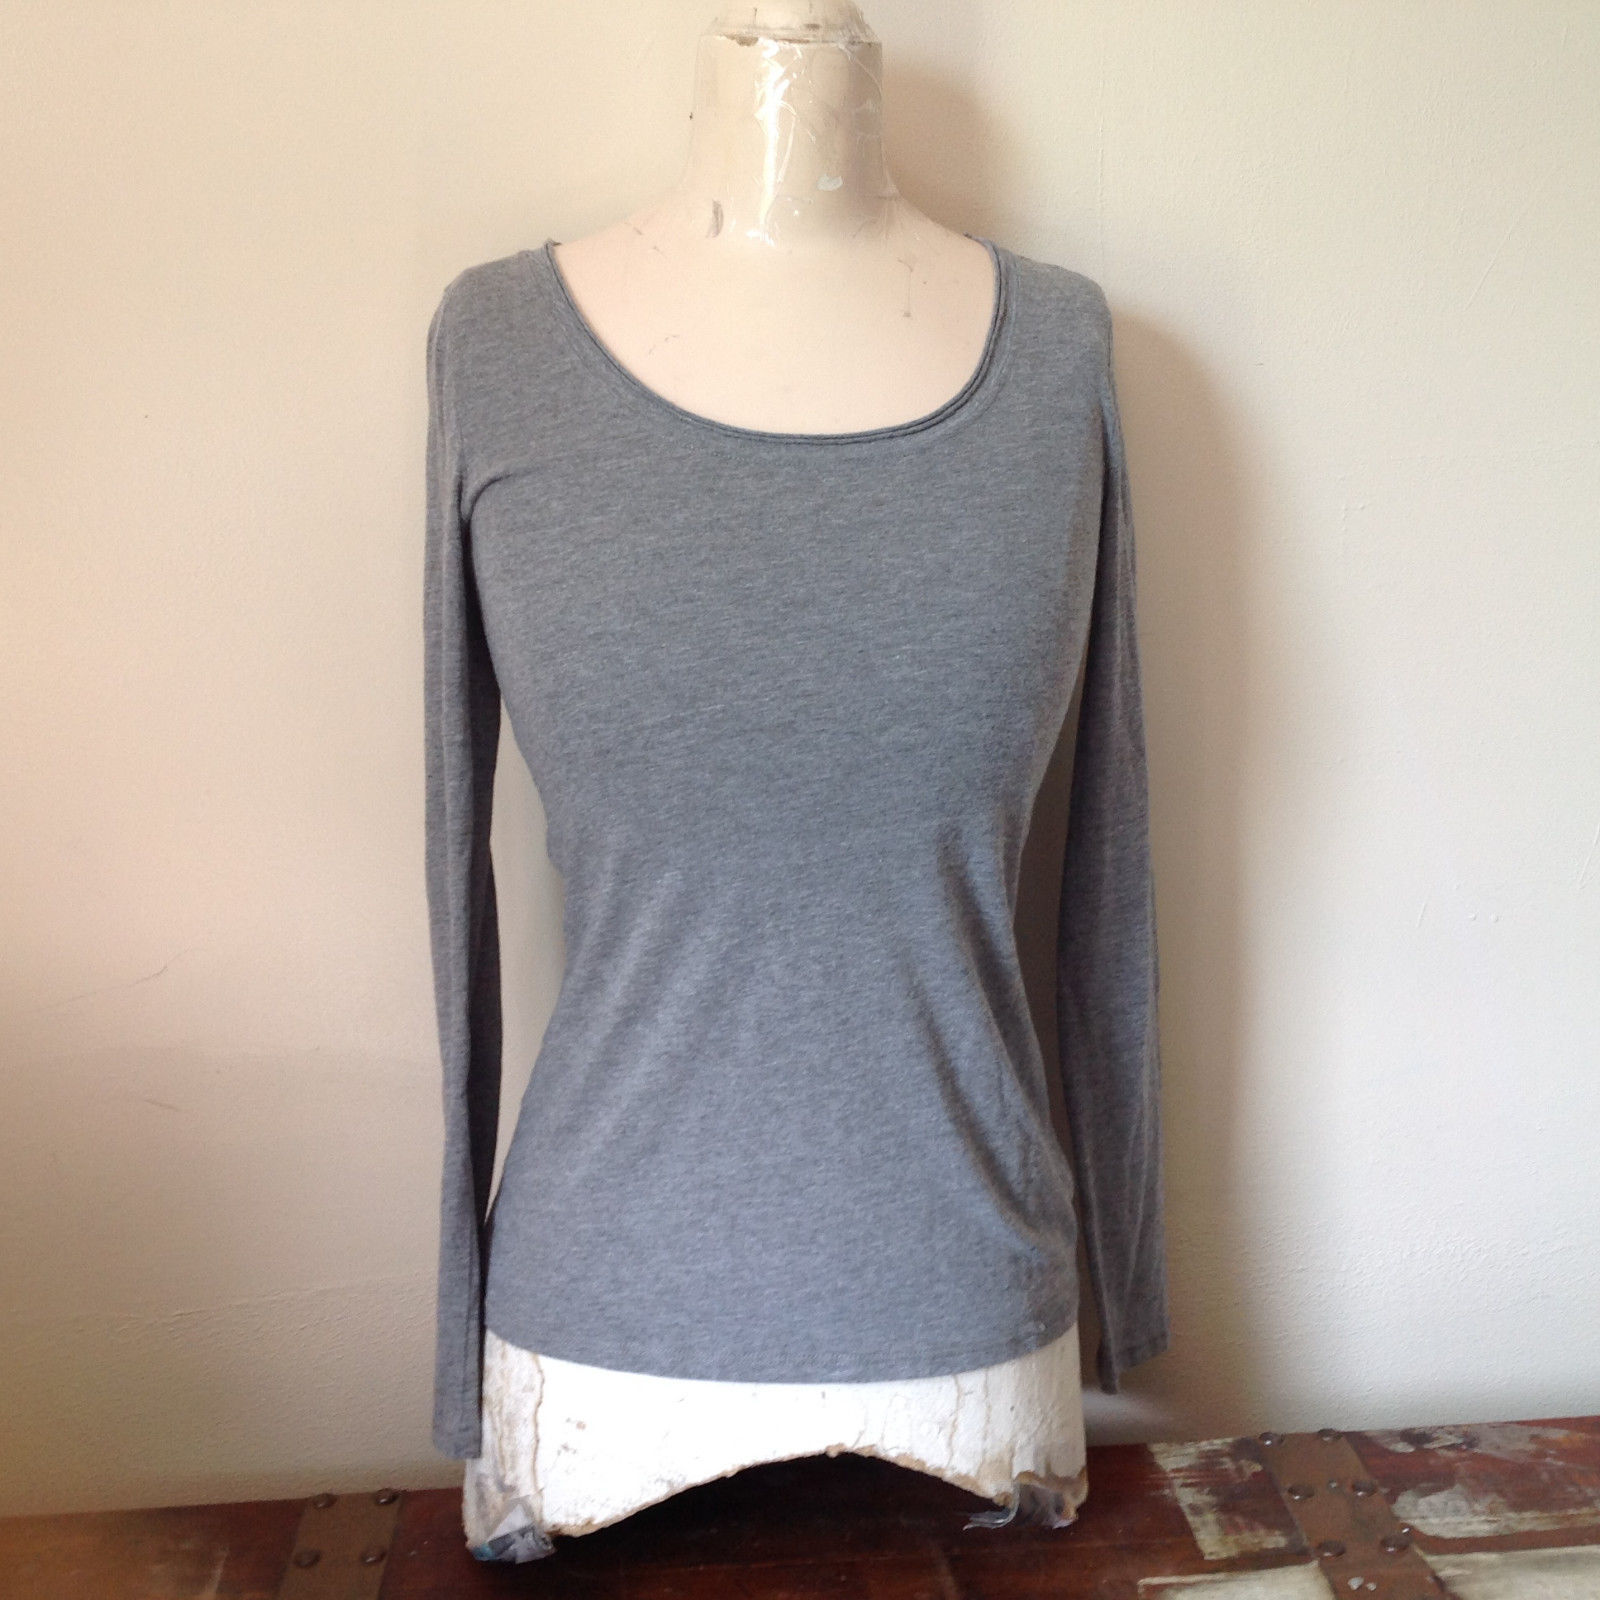 Xhilaration Light Weight Gray Long Sleeve Top Cotton Polyester Blend Size Medium